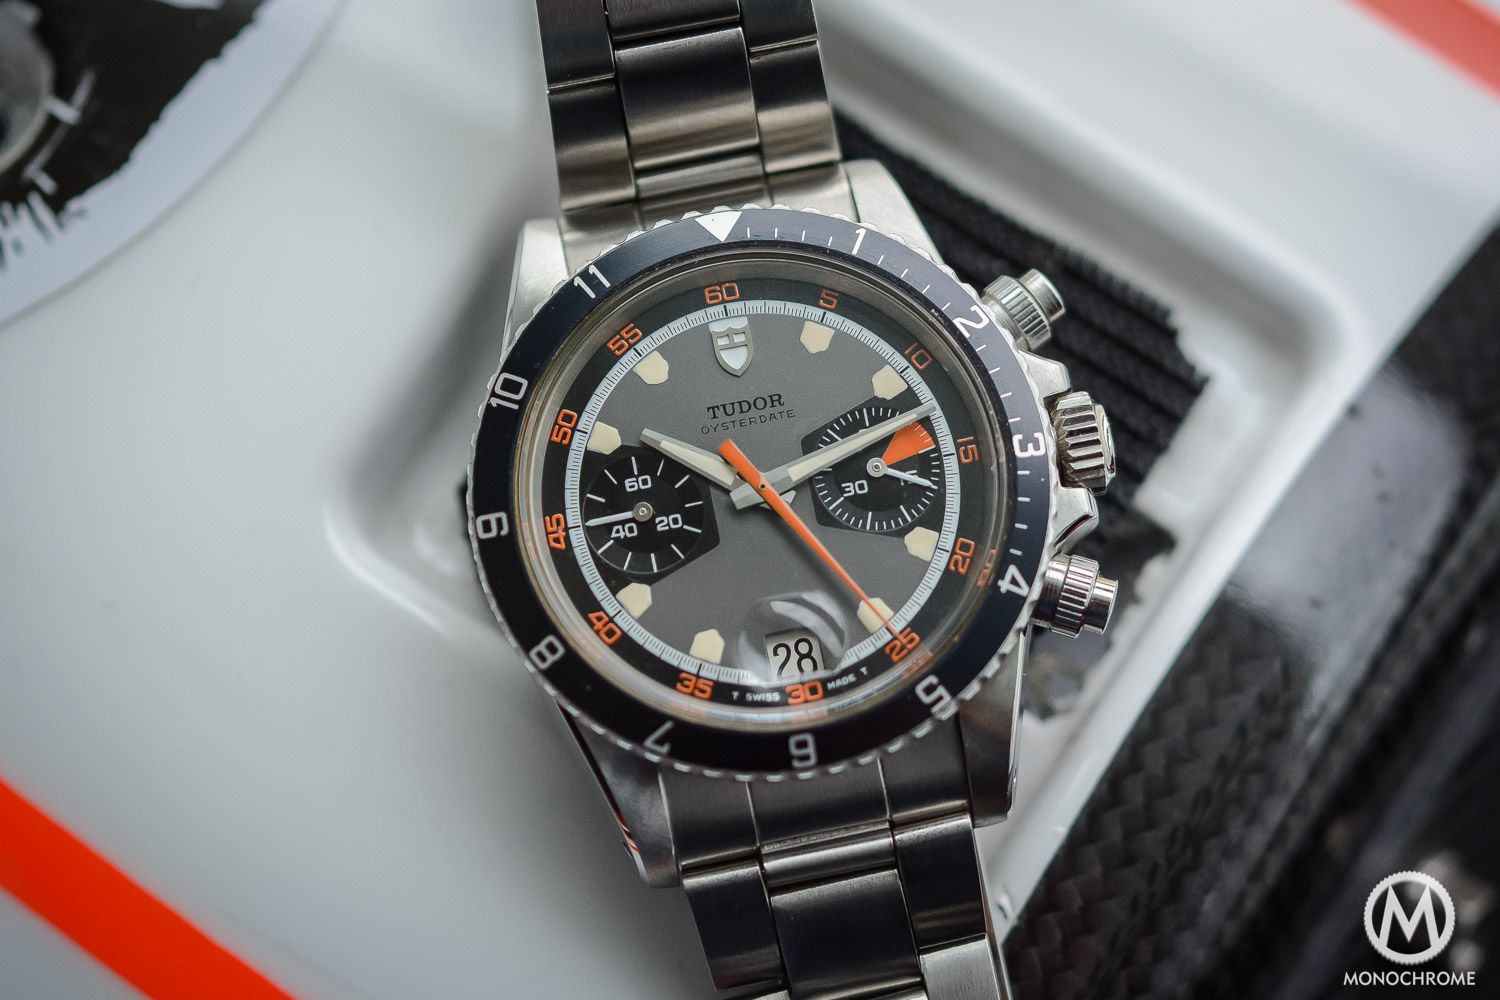 Tudor and its Heritage - The 1970s Chronographs and the Tudor Heritage Chrono #monochromewatches